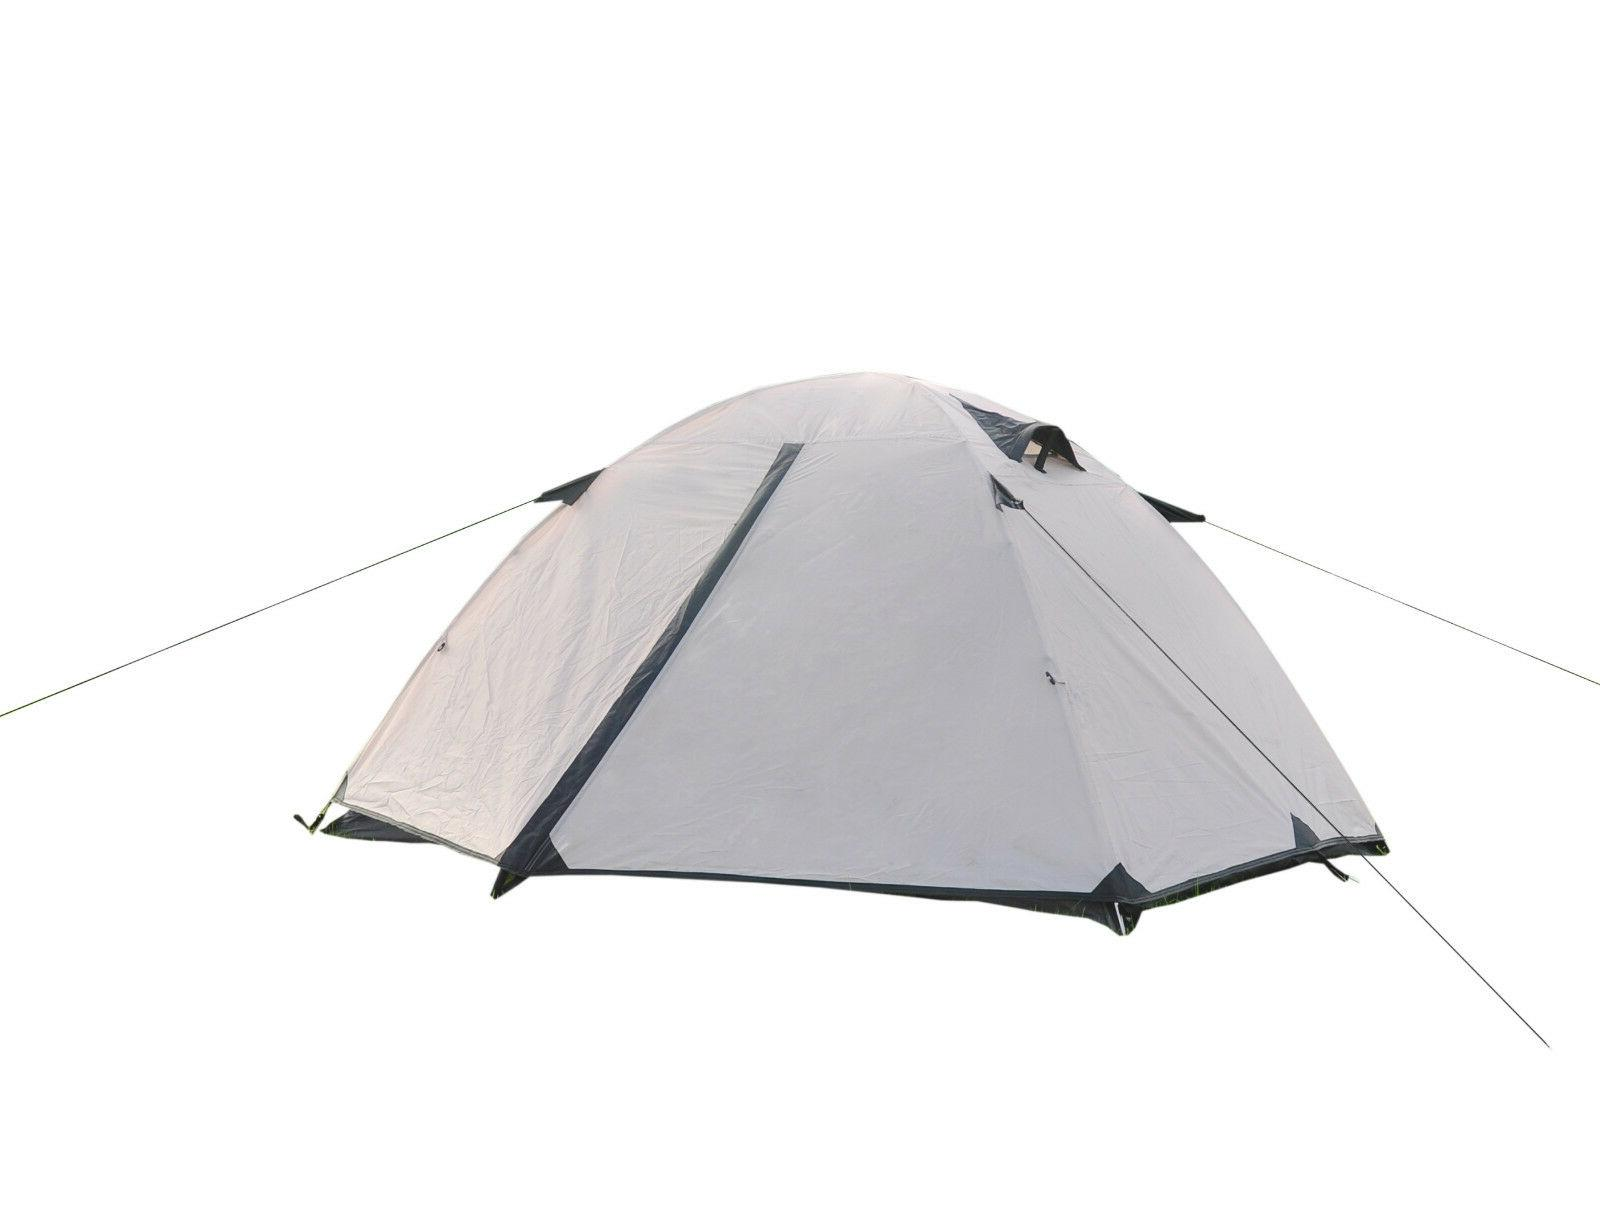 2 Person Camping Tent Double Layer Dome Travel